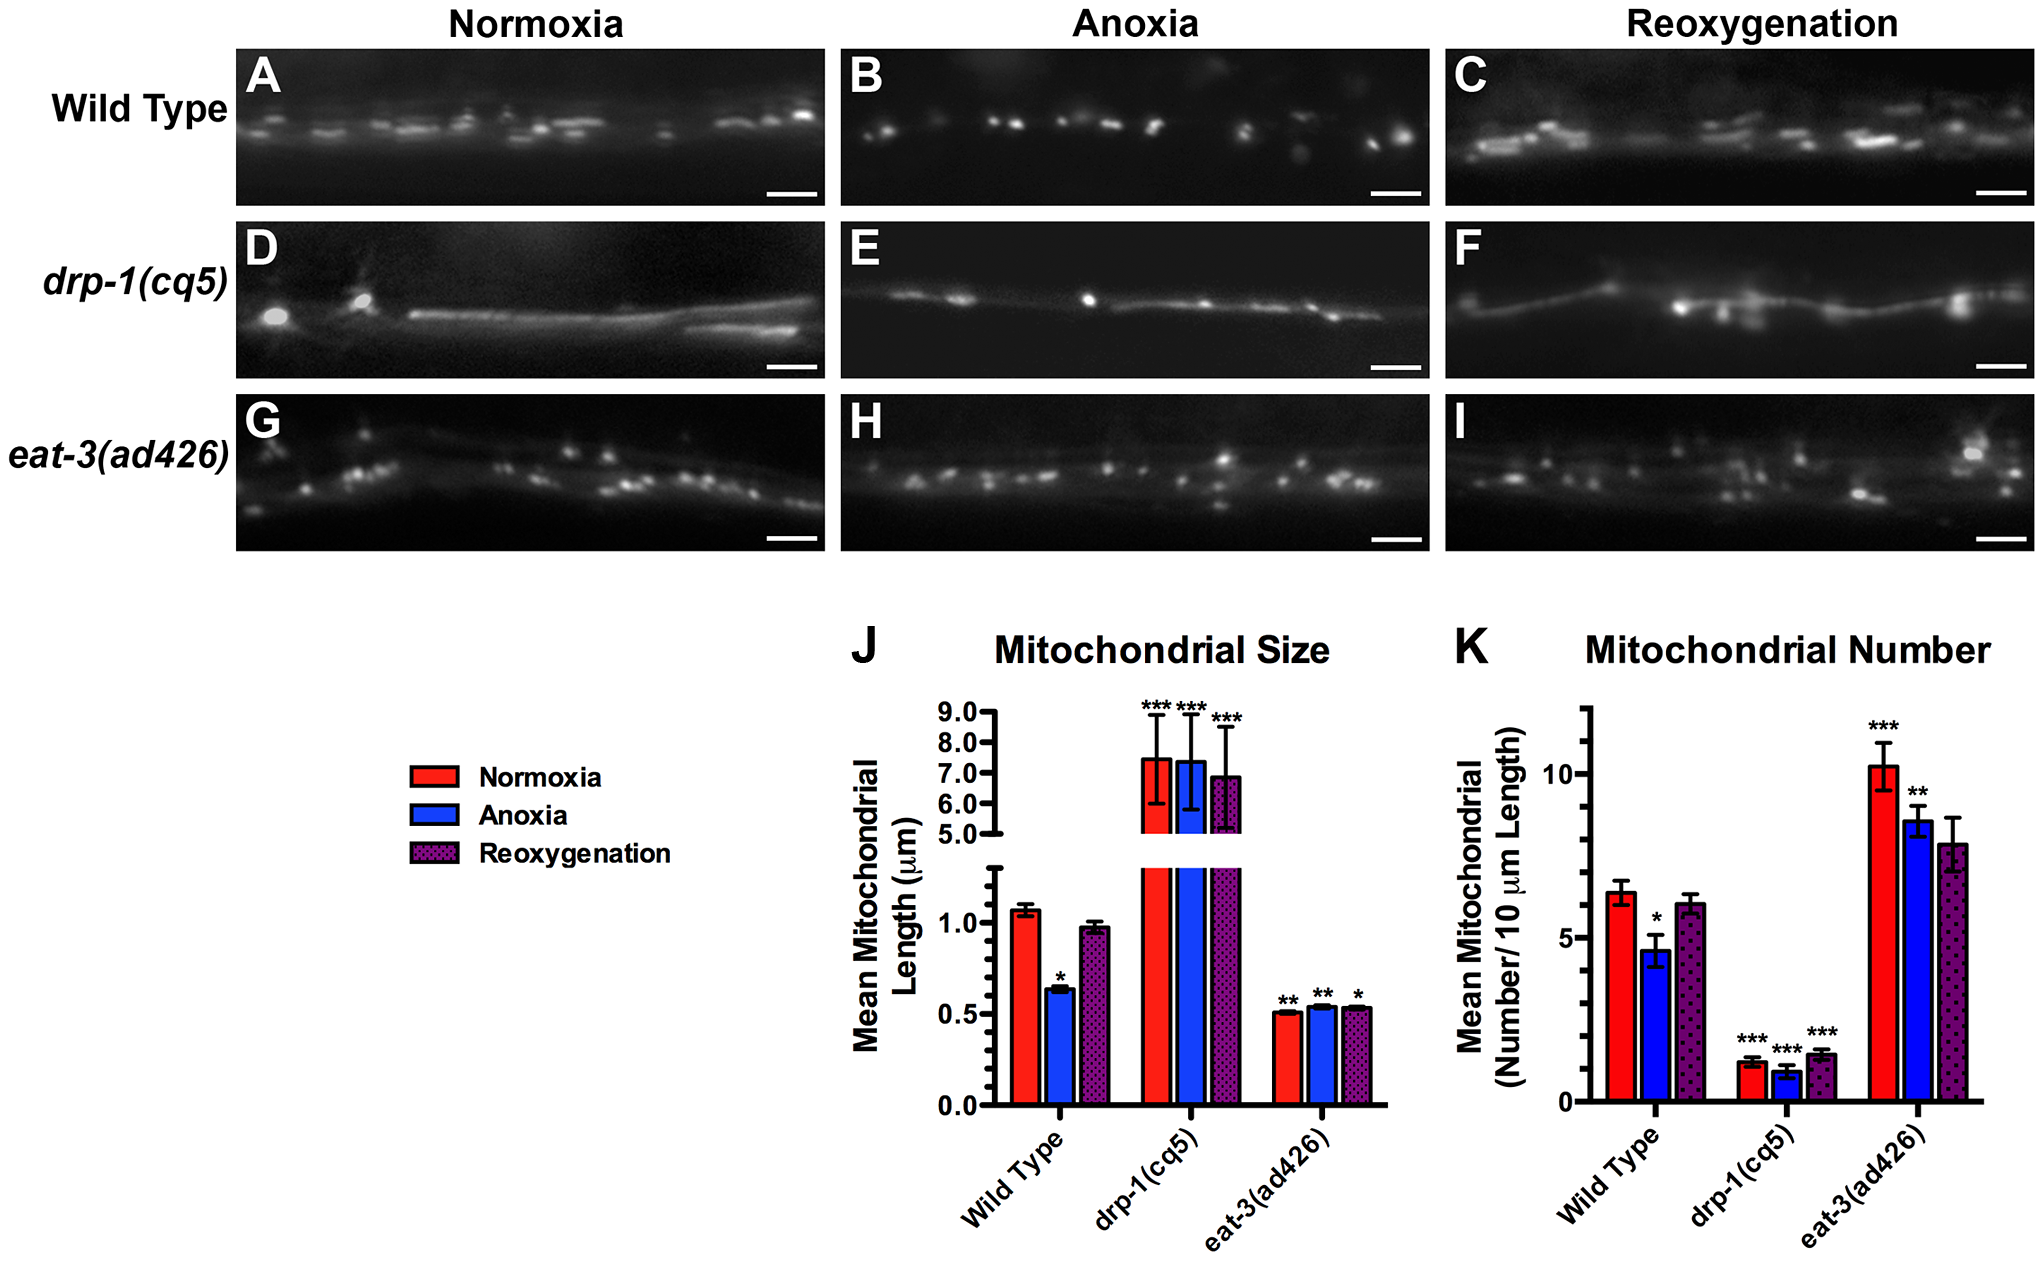 Anoxia promotes DRP-1-dependent mitochondrial fission.